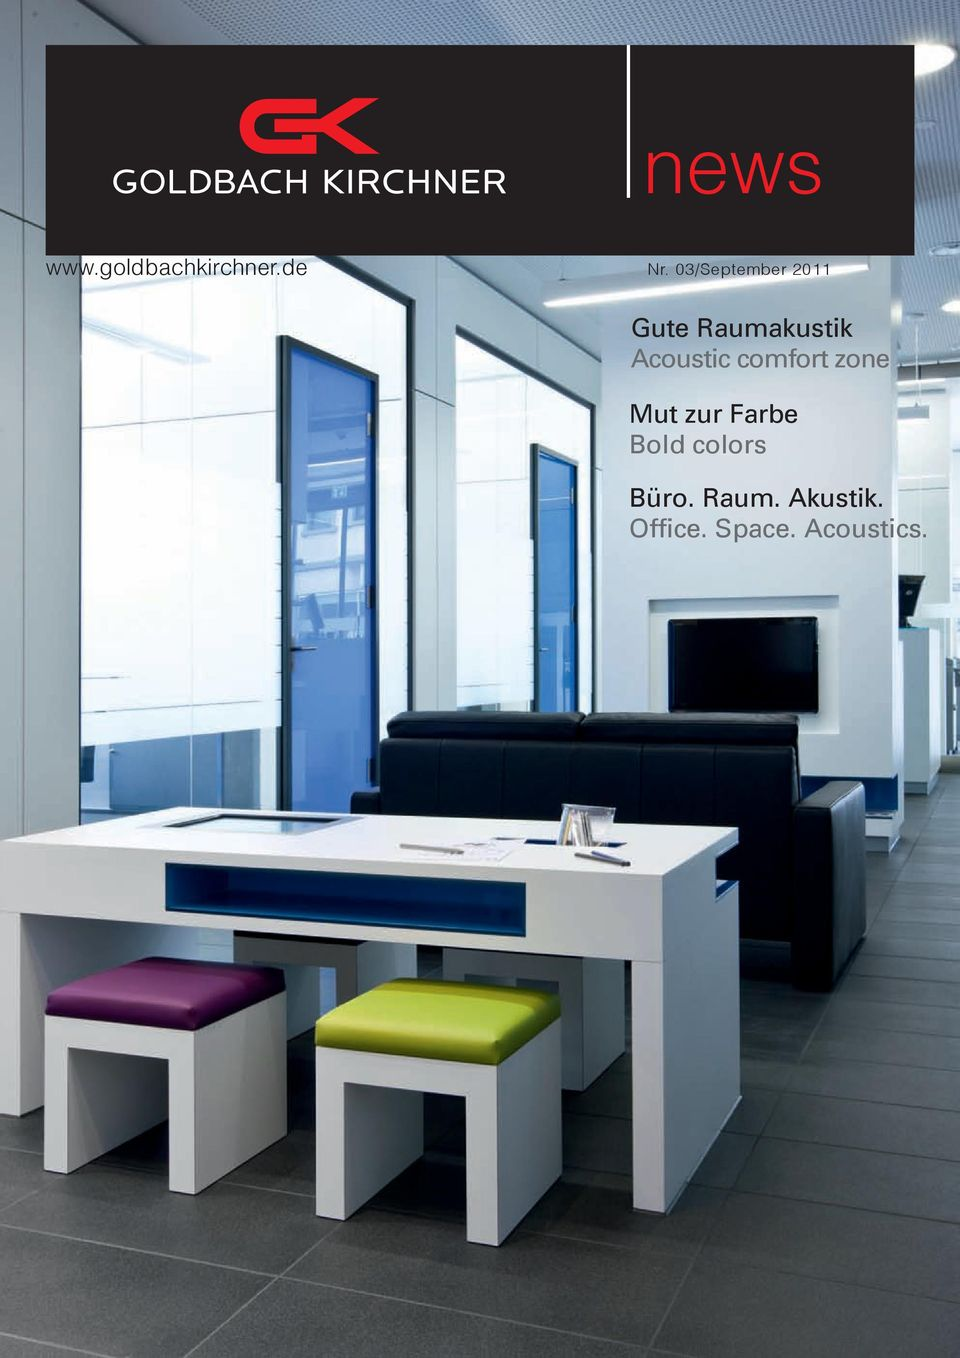 Acoustic comfort zone Mut zur Farbe Bold